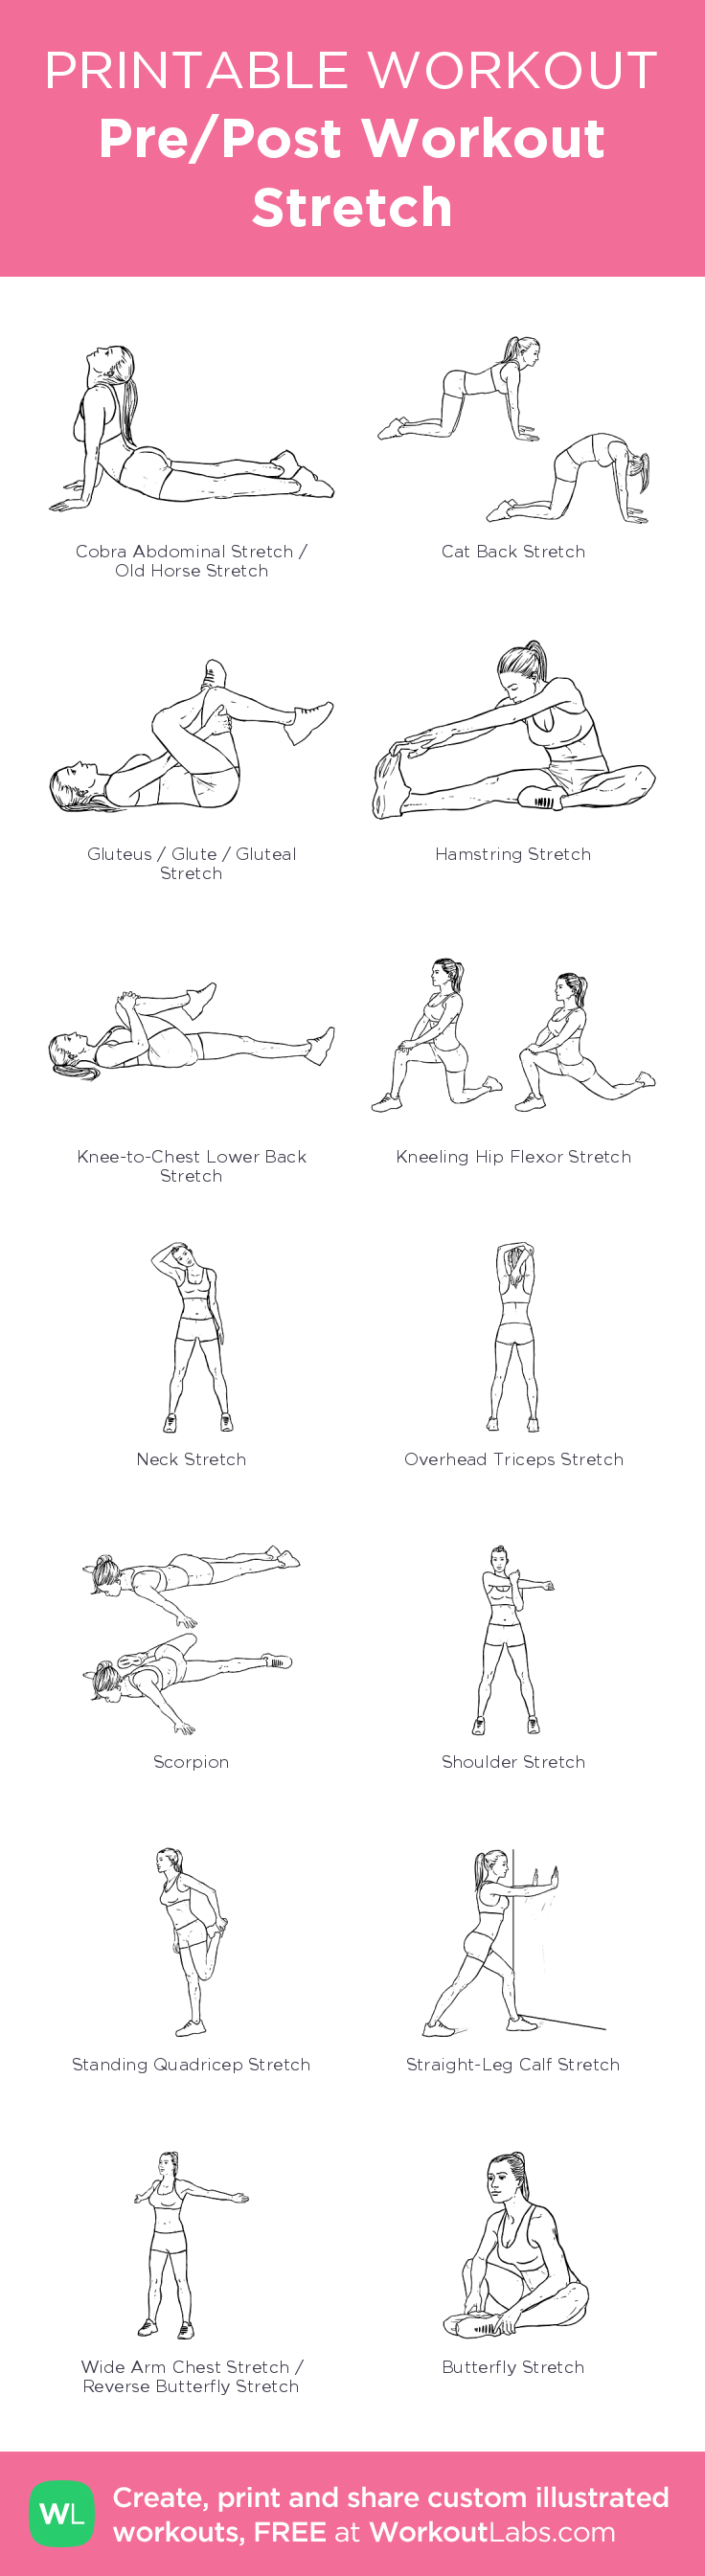 PrePost Workout Stretchu my custom exercise plan created at